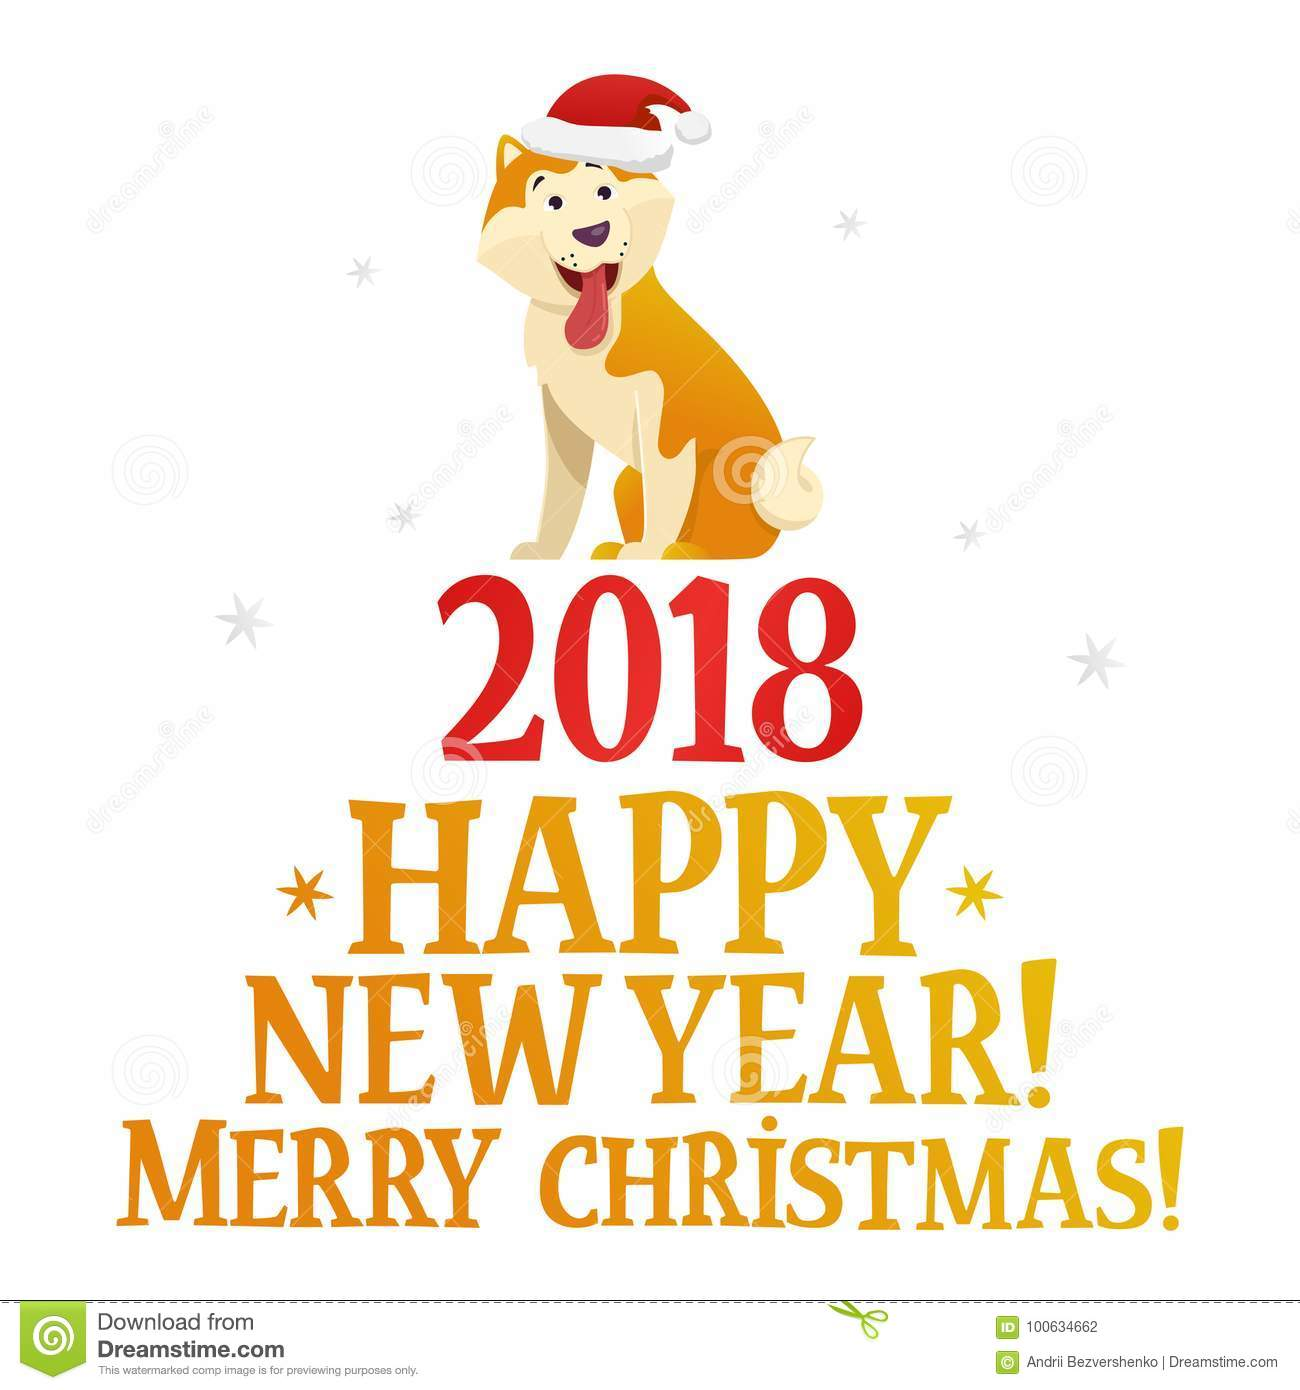 merry christmas and happy new year postcard template with the cute yellow dog on white background